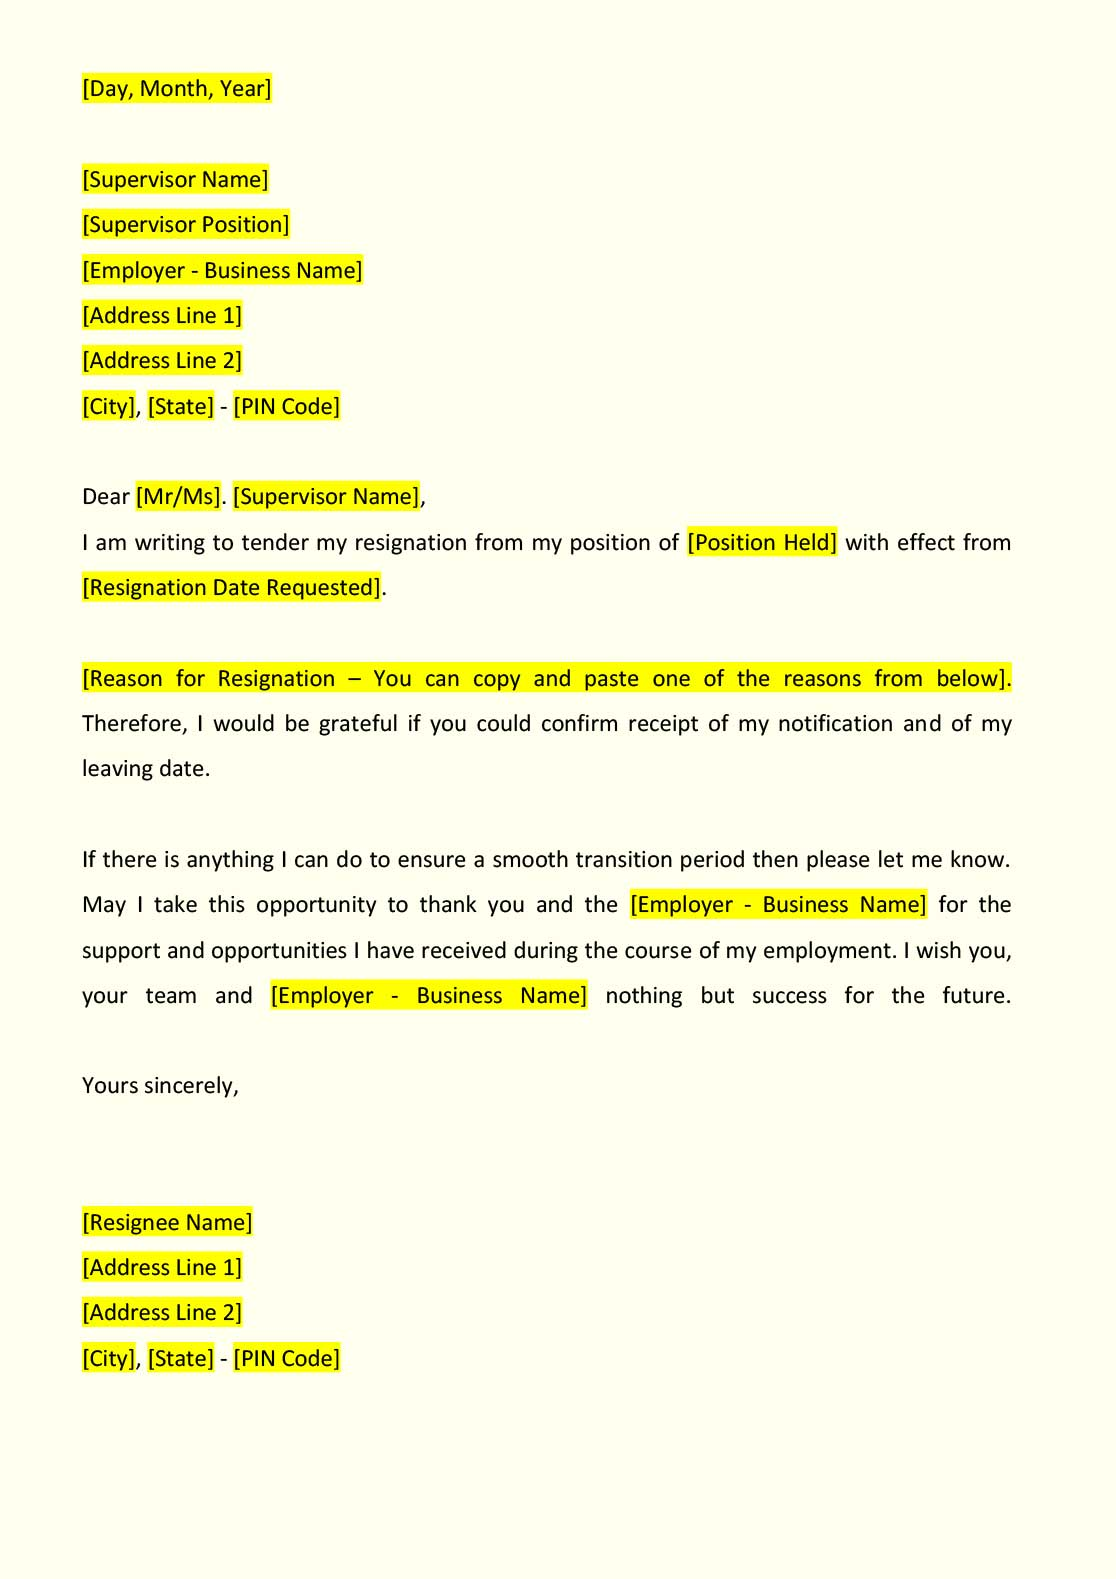 Resignation letter format indiafilings document center sample resignation letter spiritdancerdesigns Choice Image